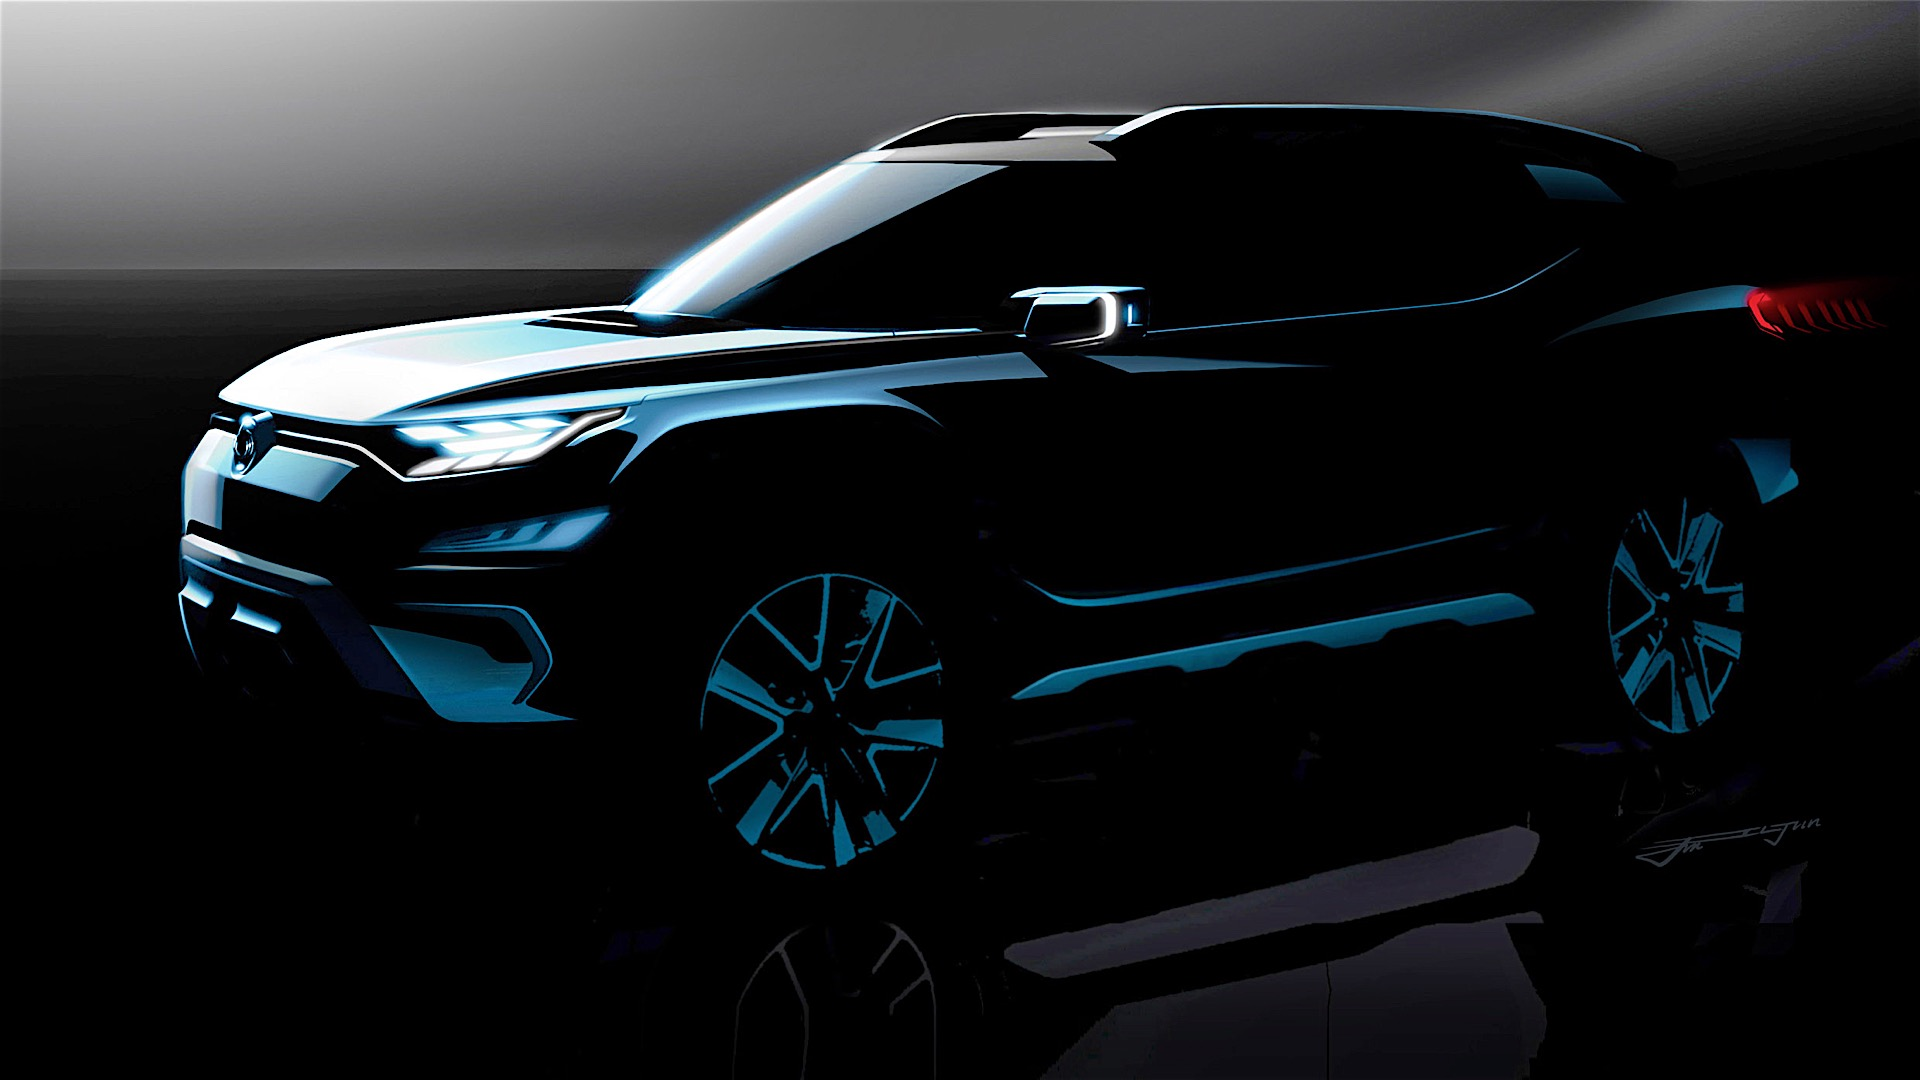 SsangYong XAVL concept SUV teased, Geneva debut